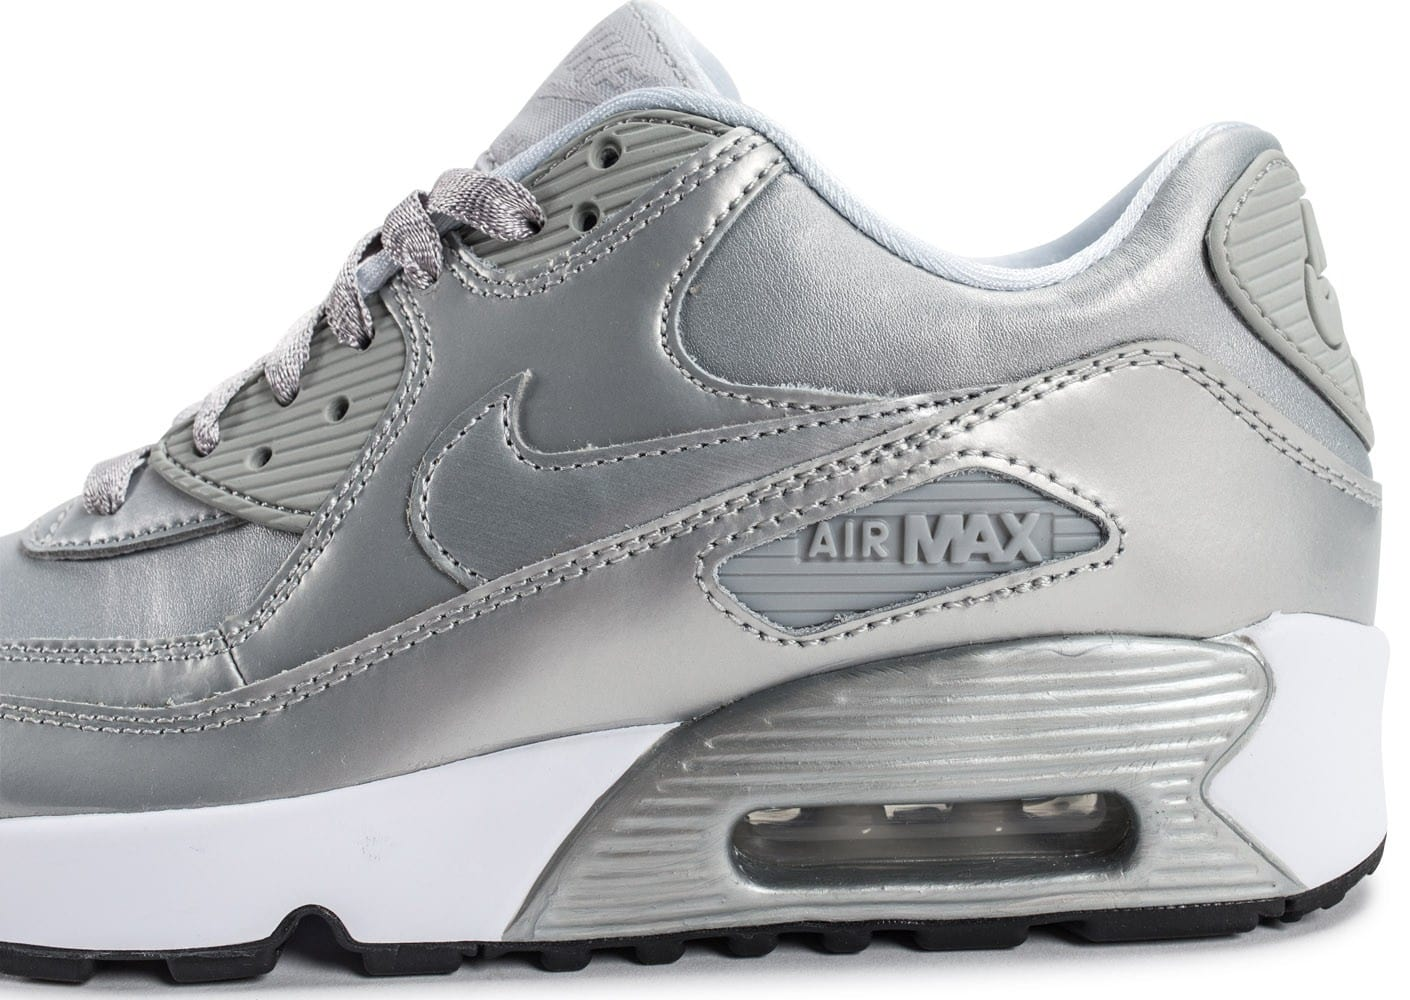 san francisco 3a61f 34e9d ... Chaussures Nike Air Max 90 SE Leather silver pack vue dessus